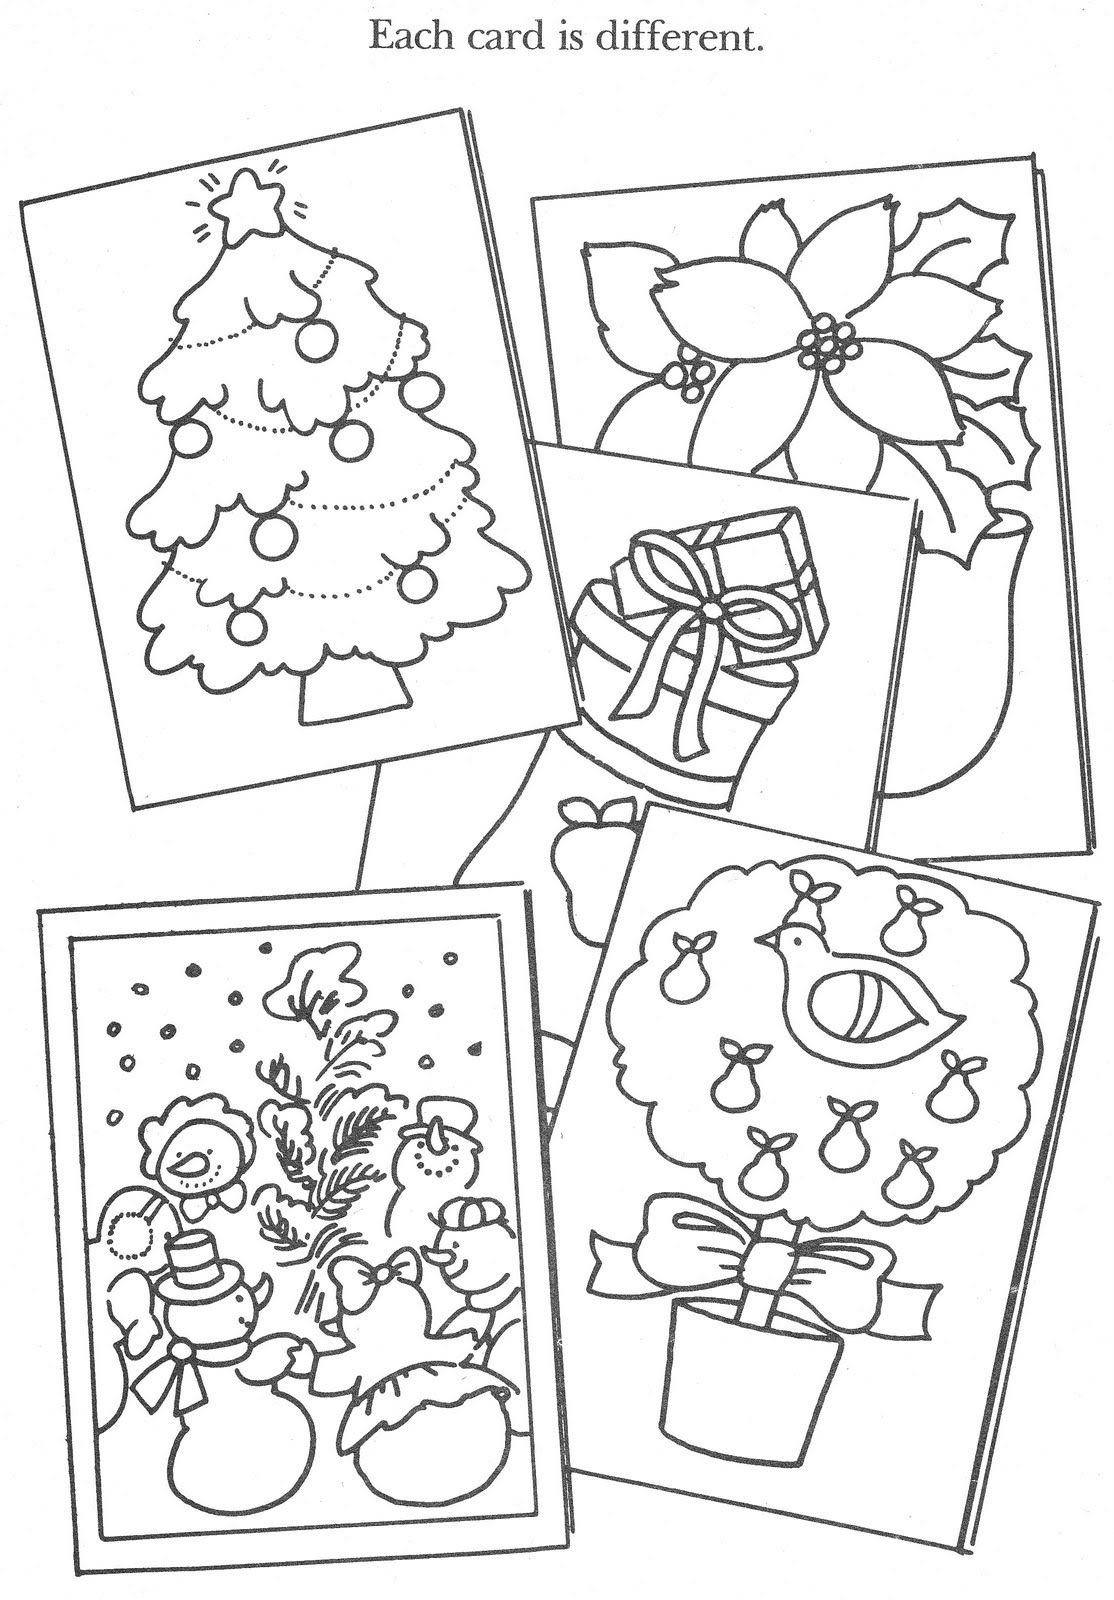 Vintage Kenner American Greetings Strawberry Shortcake Strawberry Shortcake S Christmas Coloring Fun Colouring Book Purchas